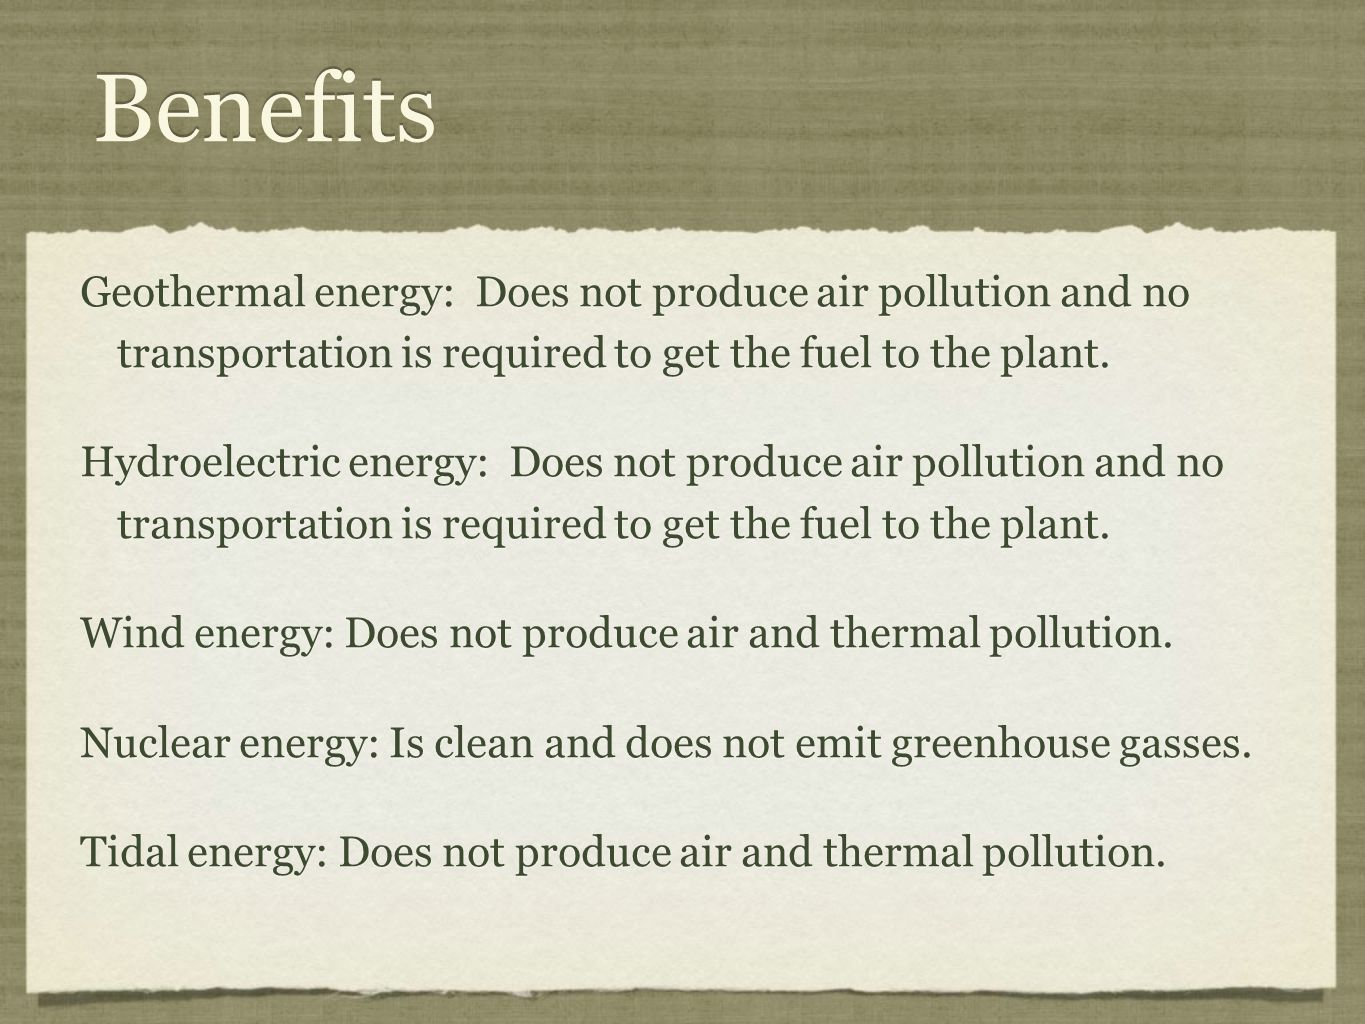 Benefits Geothermal energy: Does not produce air pollution and no transportation is required to get the fuel to the plant.